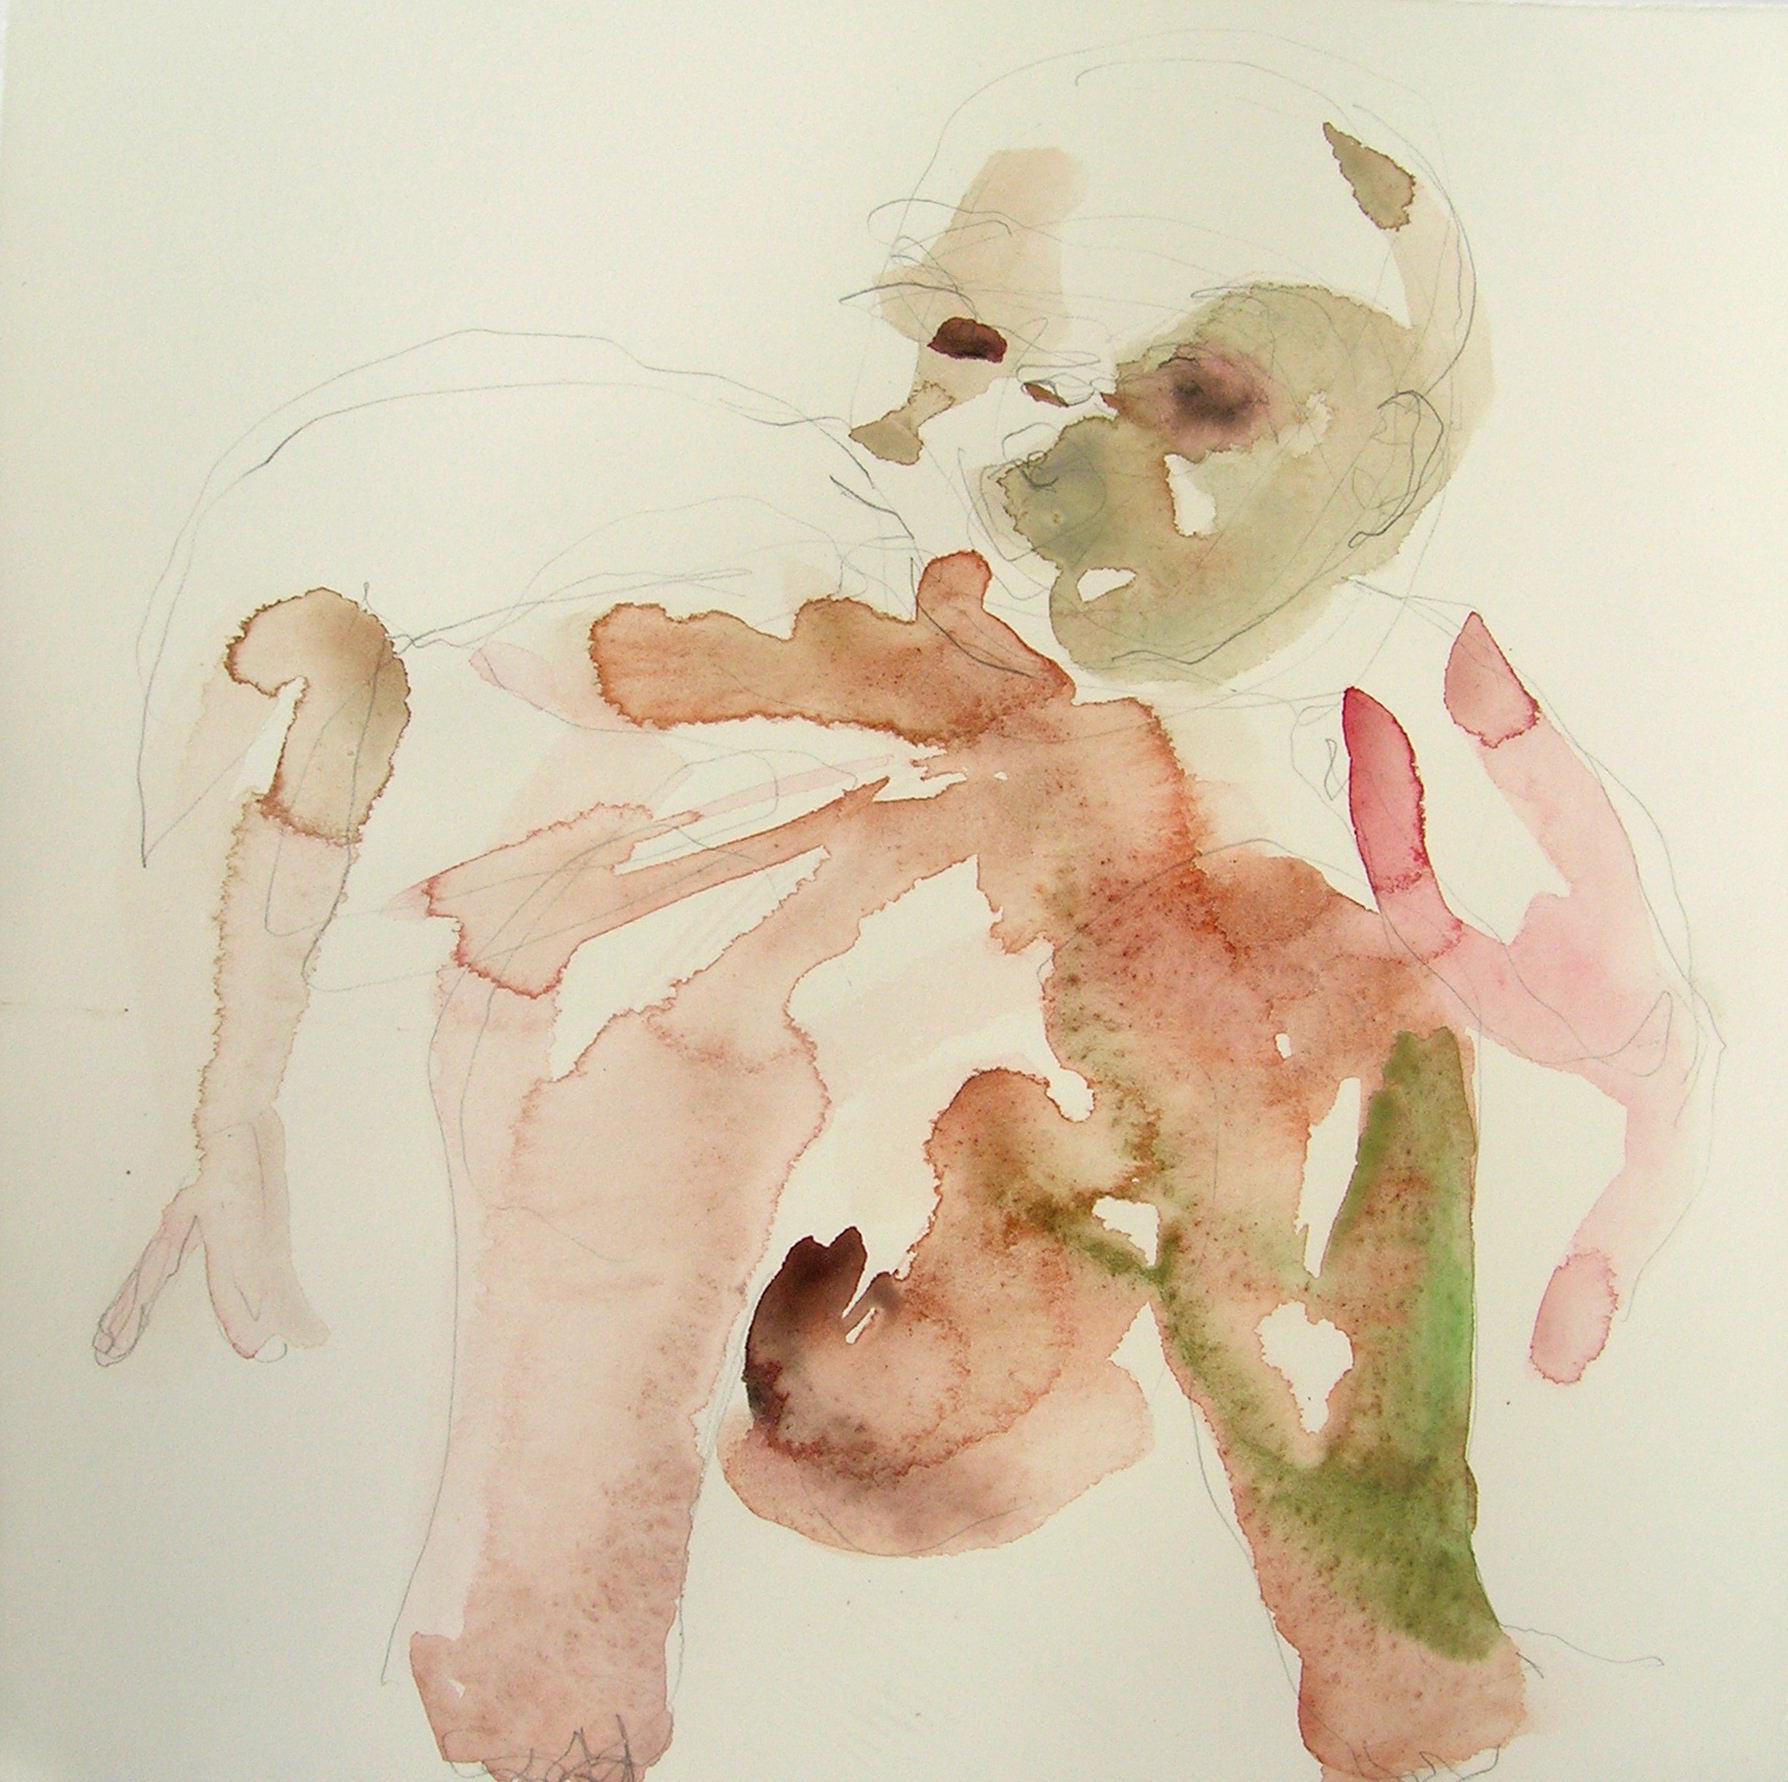 Sentar 24, 2007, Graphite and watercolor on paper, 13 X 12 in.